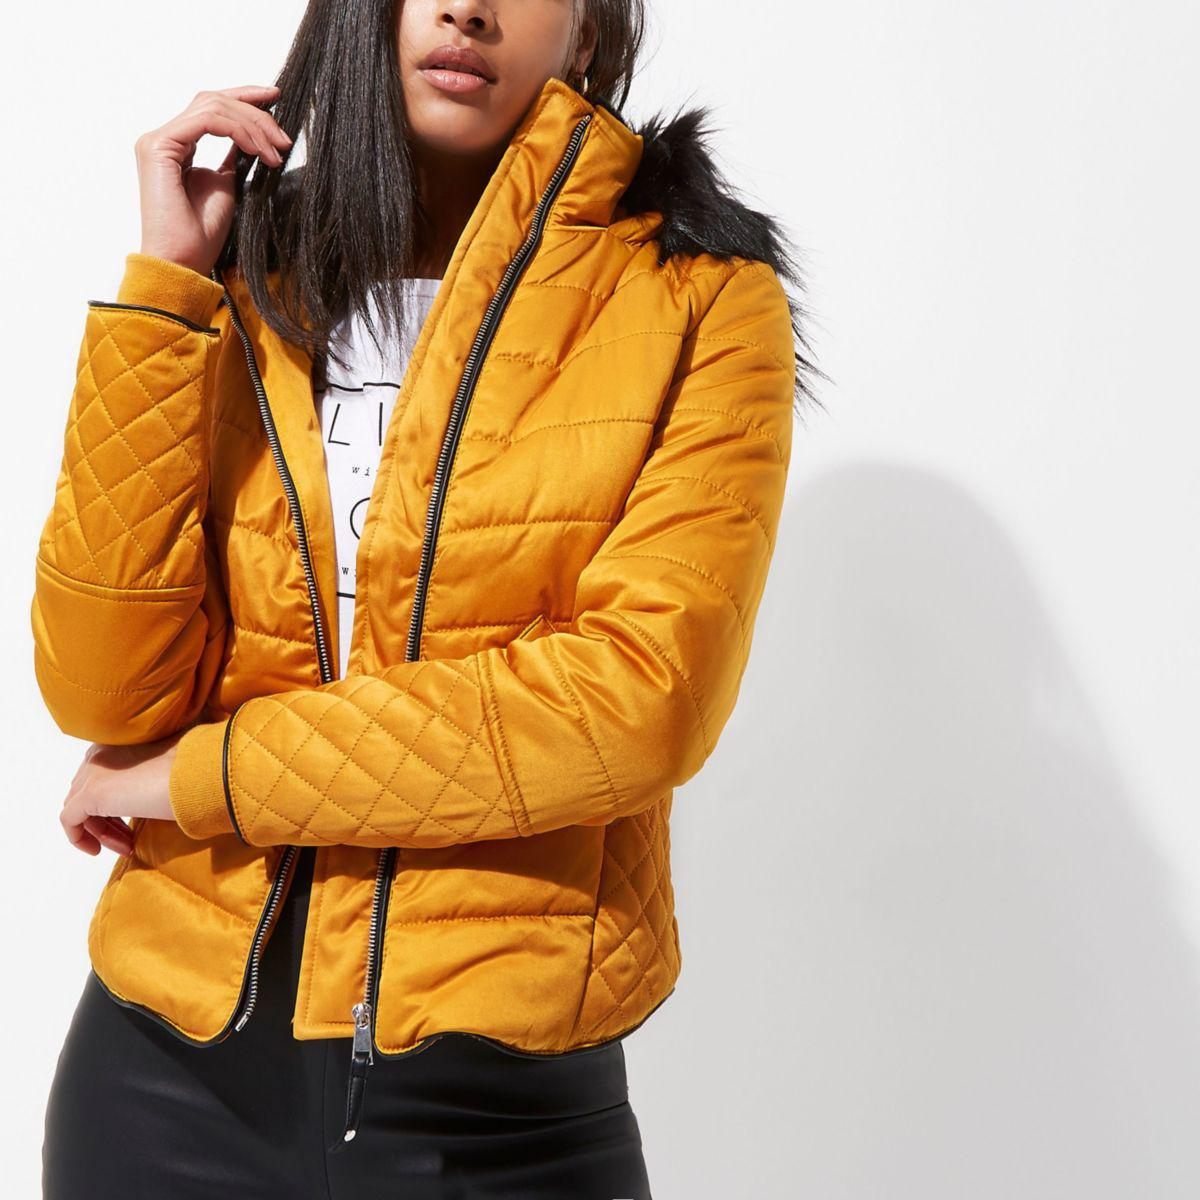 5280893e103 River Island Yellow Quilted Fur Trim Puffer Jacket in Yellow - Lyst